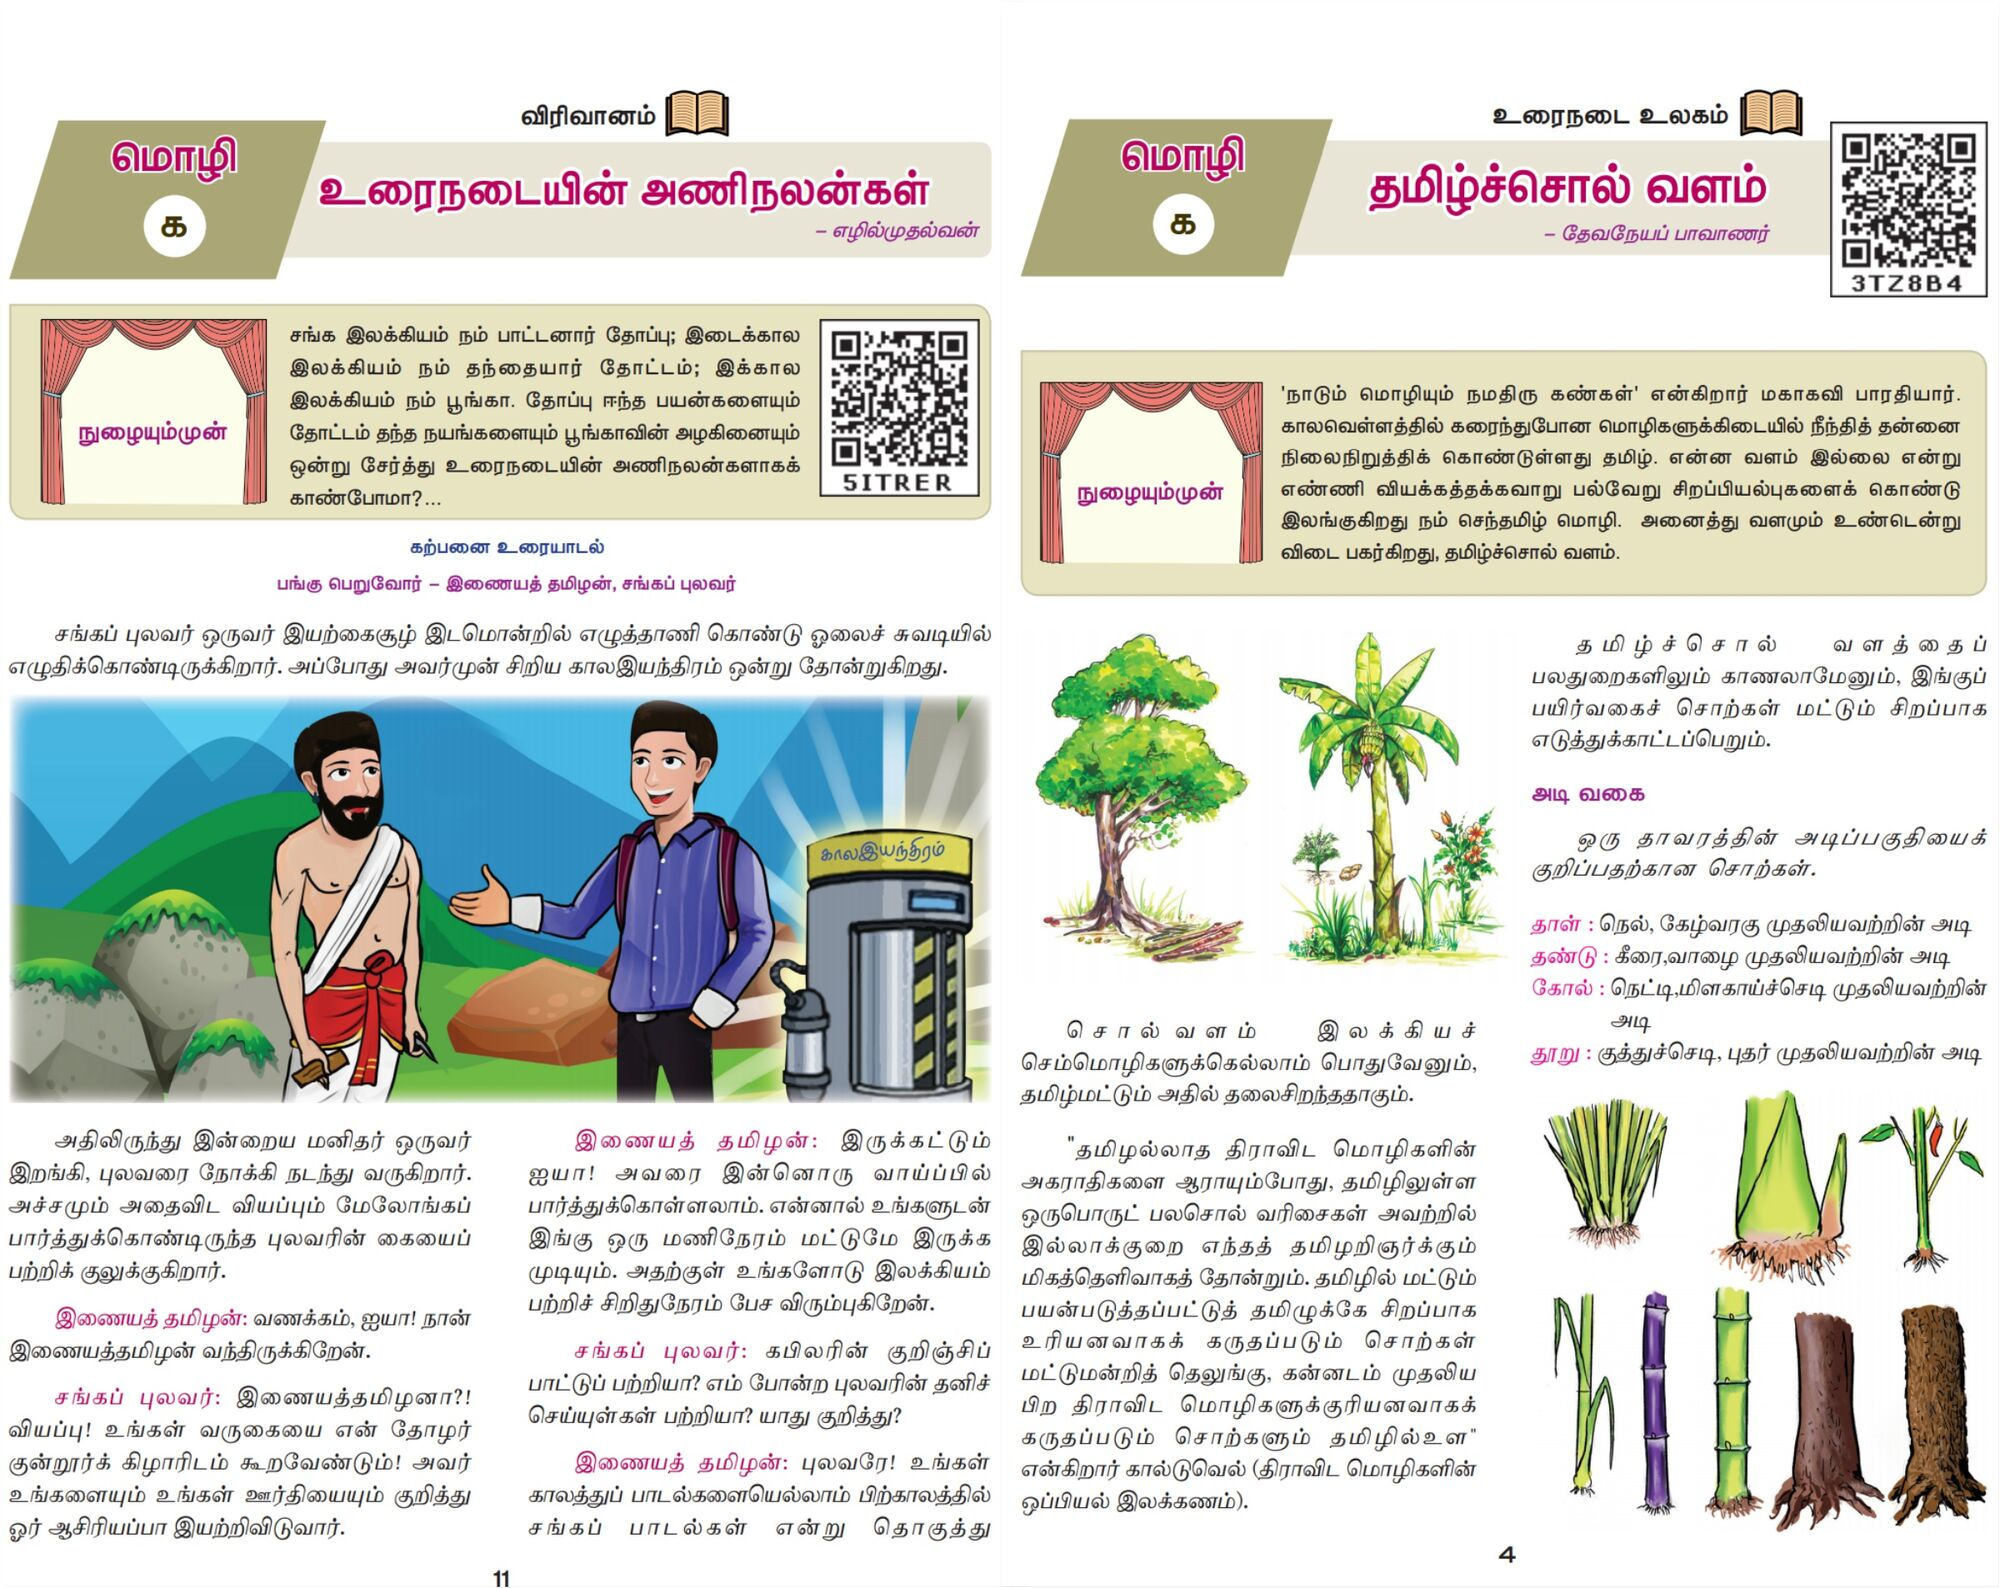 Sample pages from the 10th Standard Tamil Textbook from Tamil Nadu